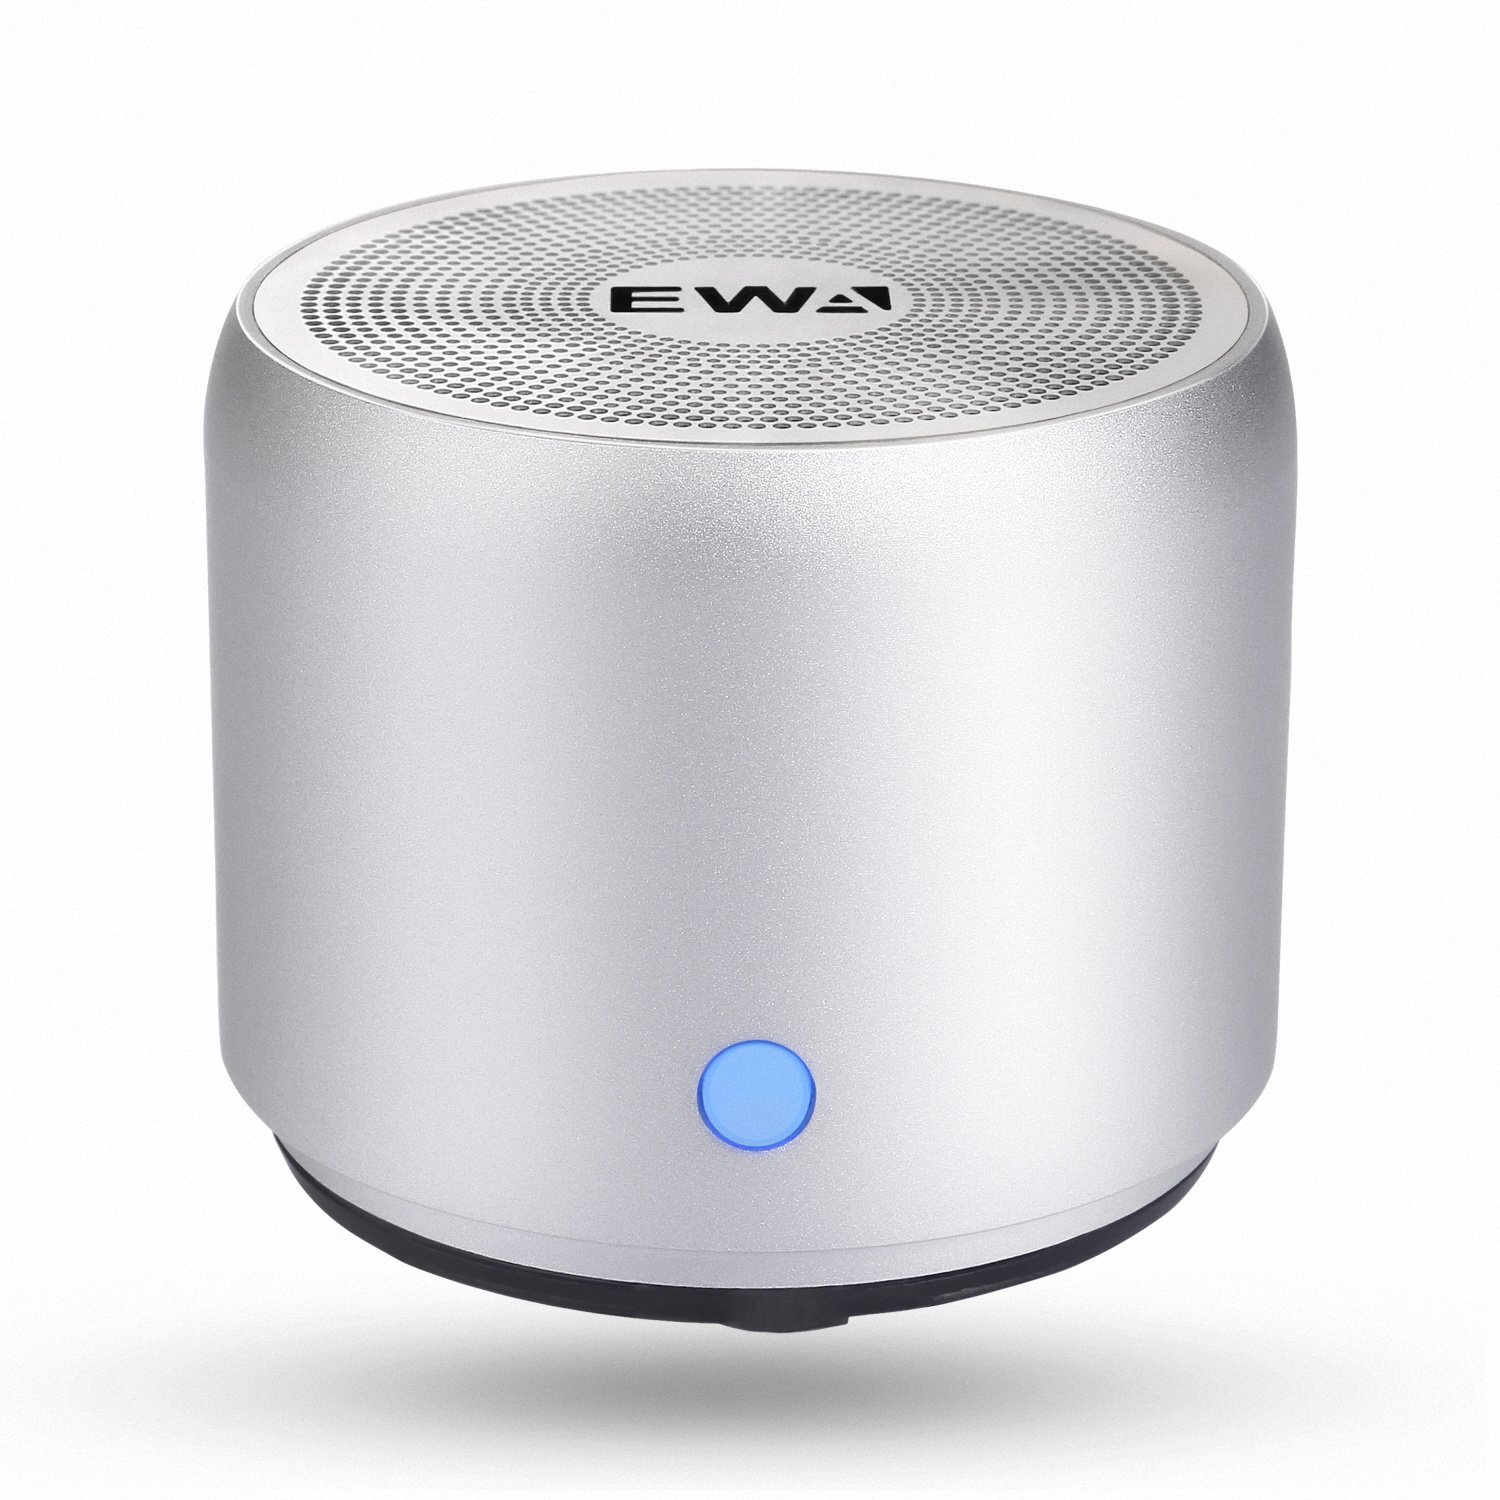 EWA A106 Portable Mini Bluetooth Speaker with Passive Radiator, Powerful Sound, Enhanced Bass, Tiny Body Loud Voice, Perfect Wireless Speaker For Shower, Travel, Outdoor, Echo Dot, Hiking and More by Ewa (Image #8)